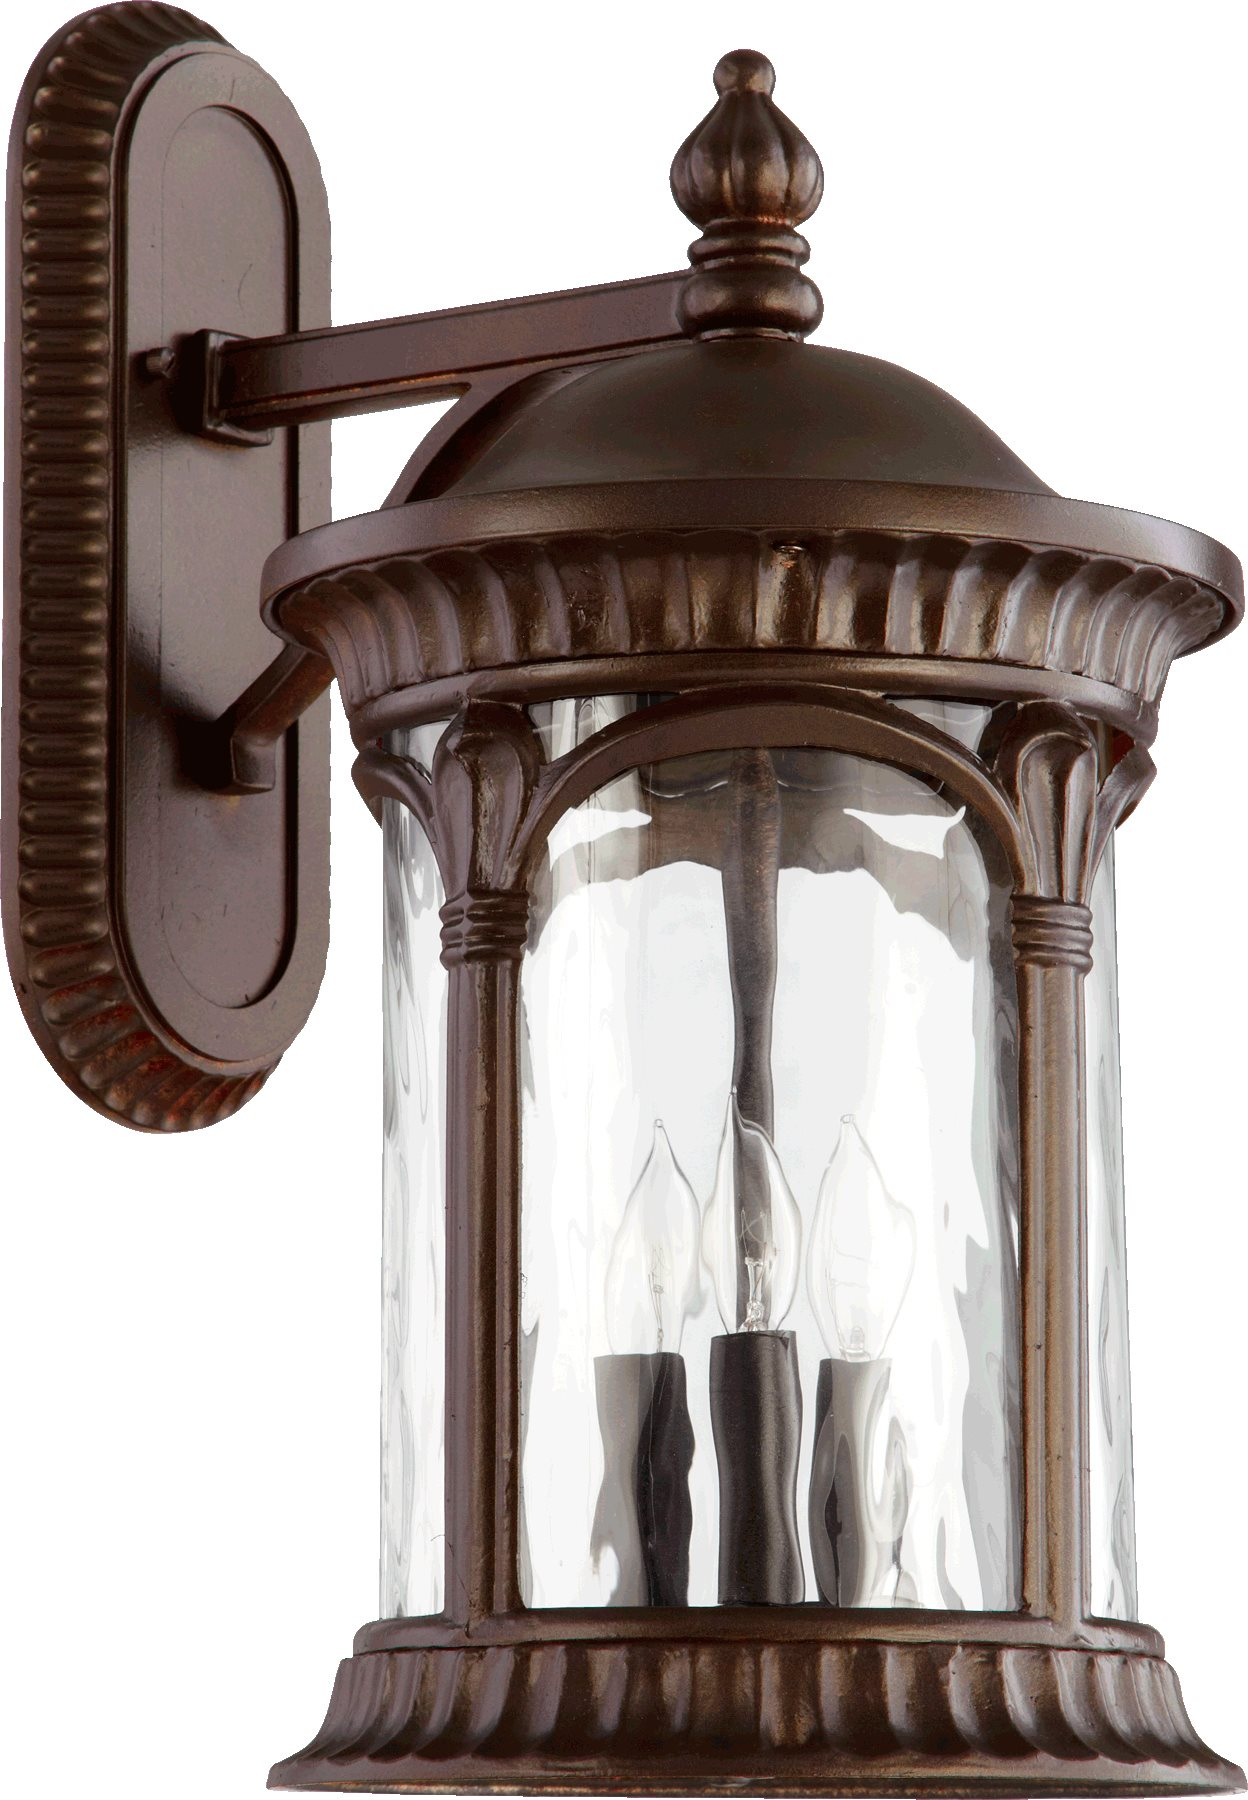 Quorum Lighting 7900 3 86 Riviera Traditional Outdoor Wall Sconce Qr 7900 3 86